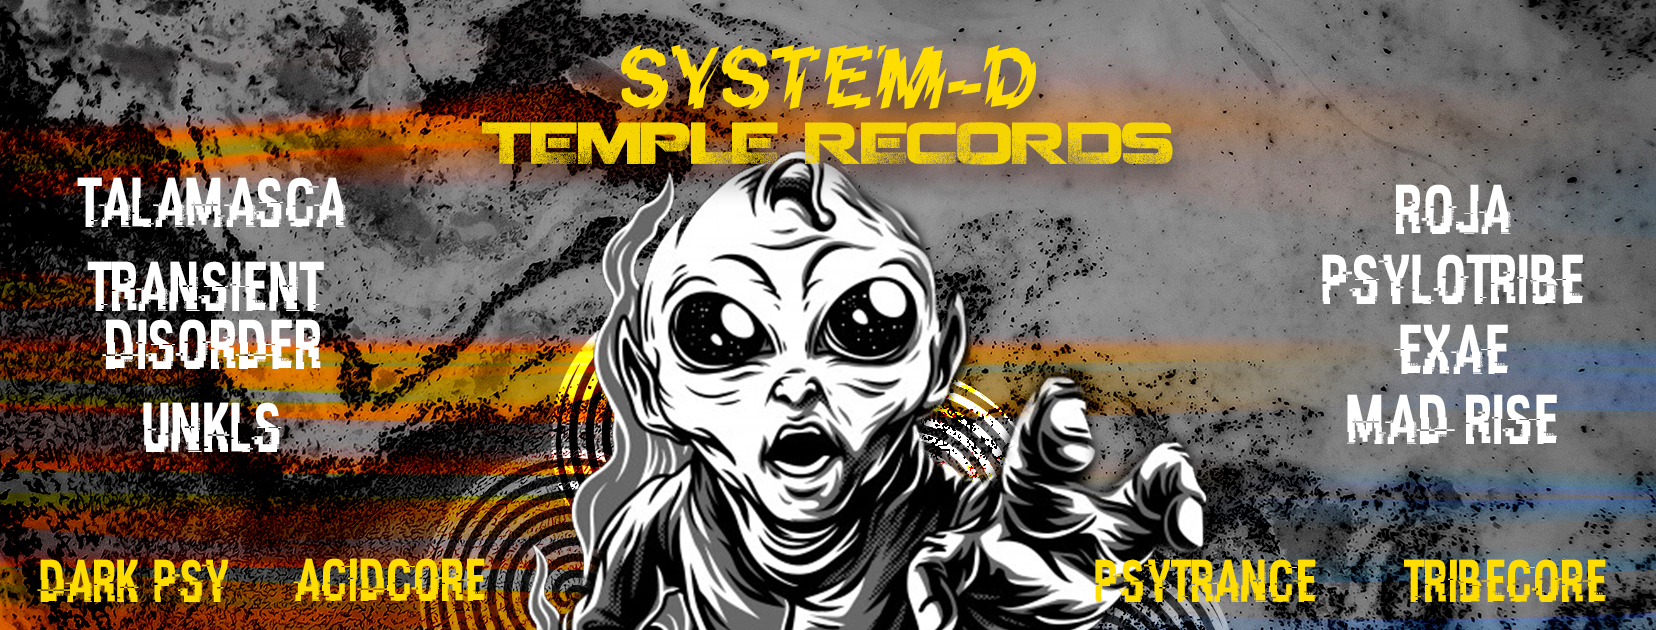 System - D x Temple Records